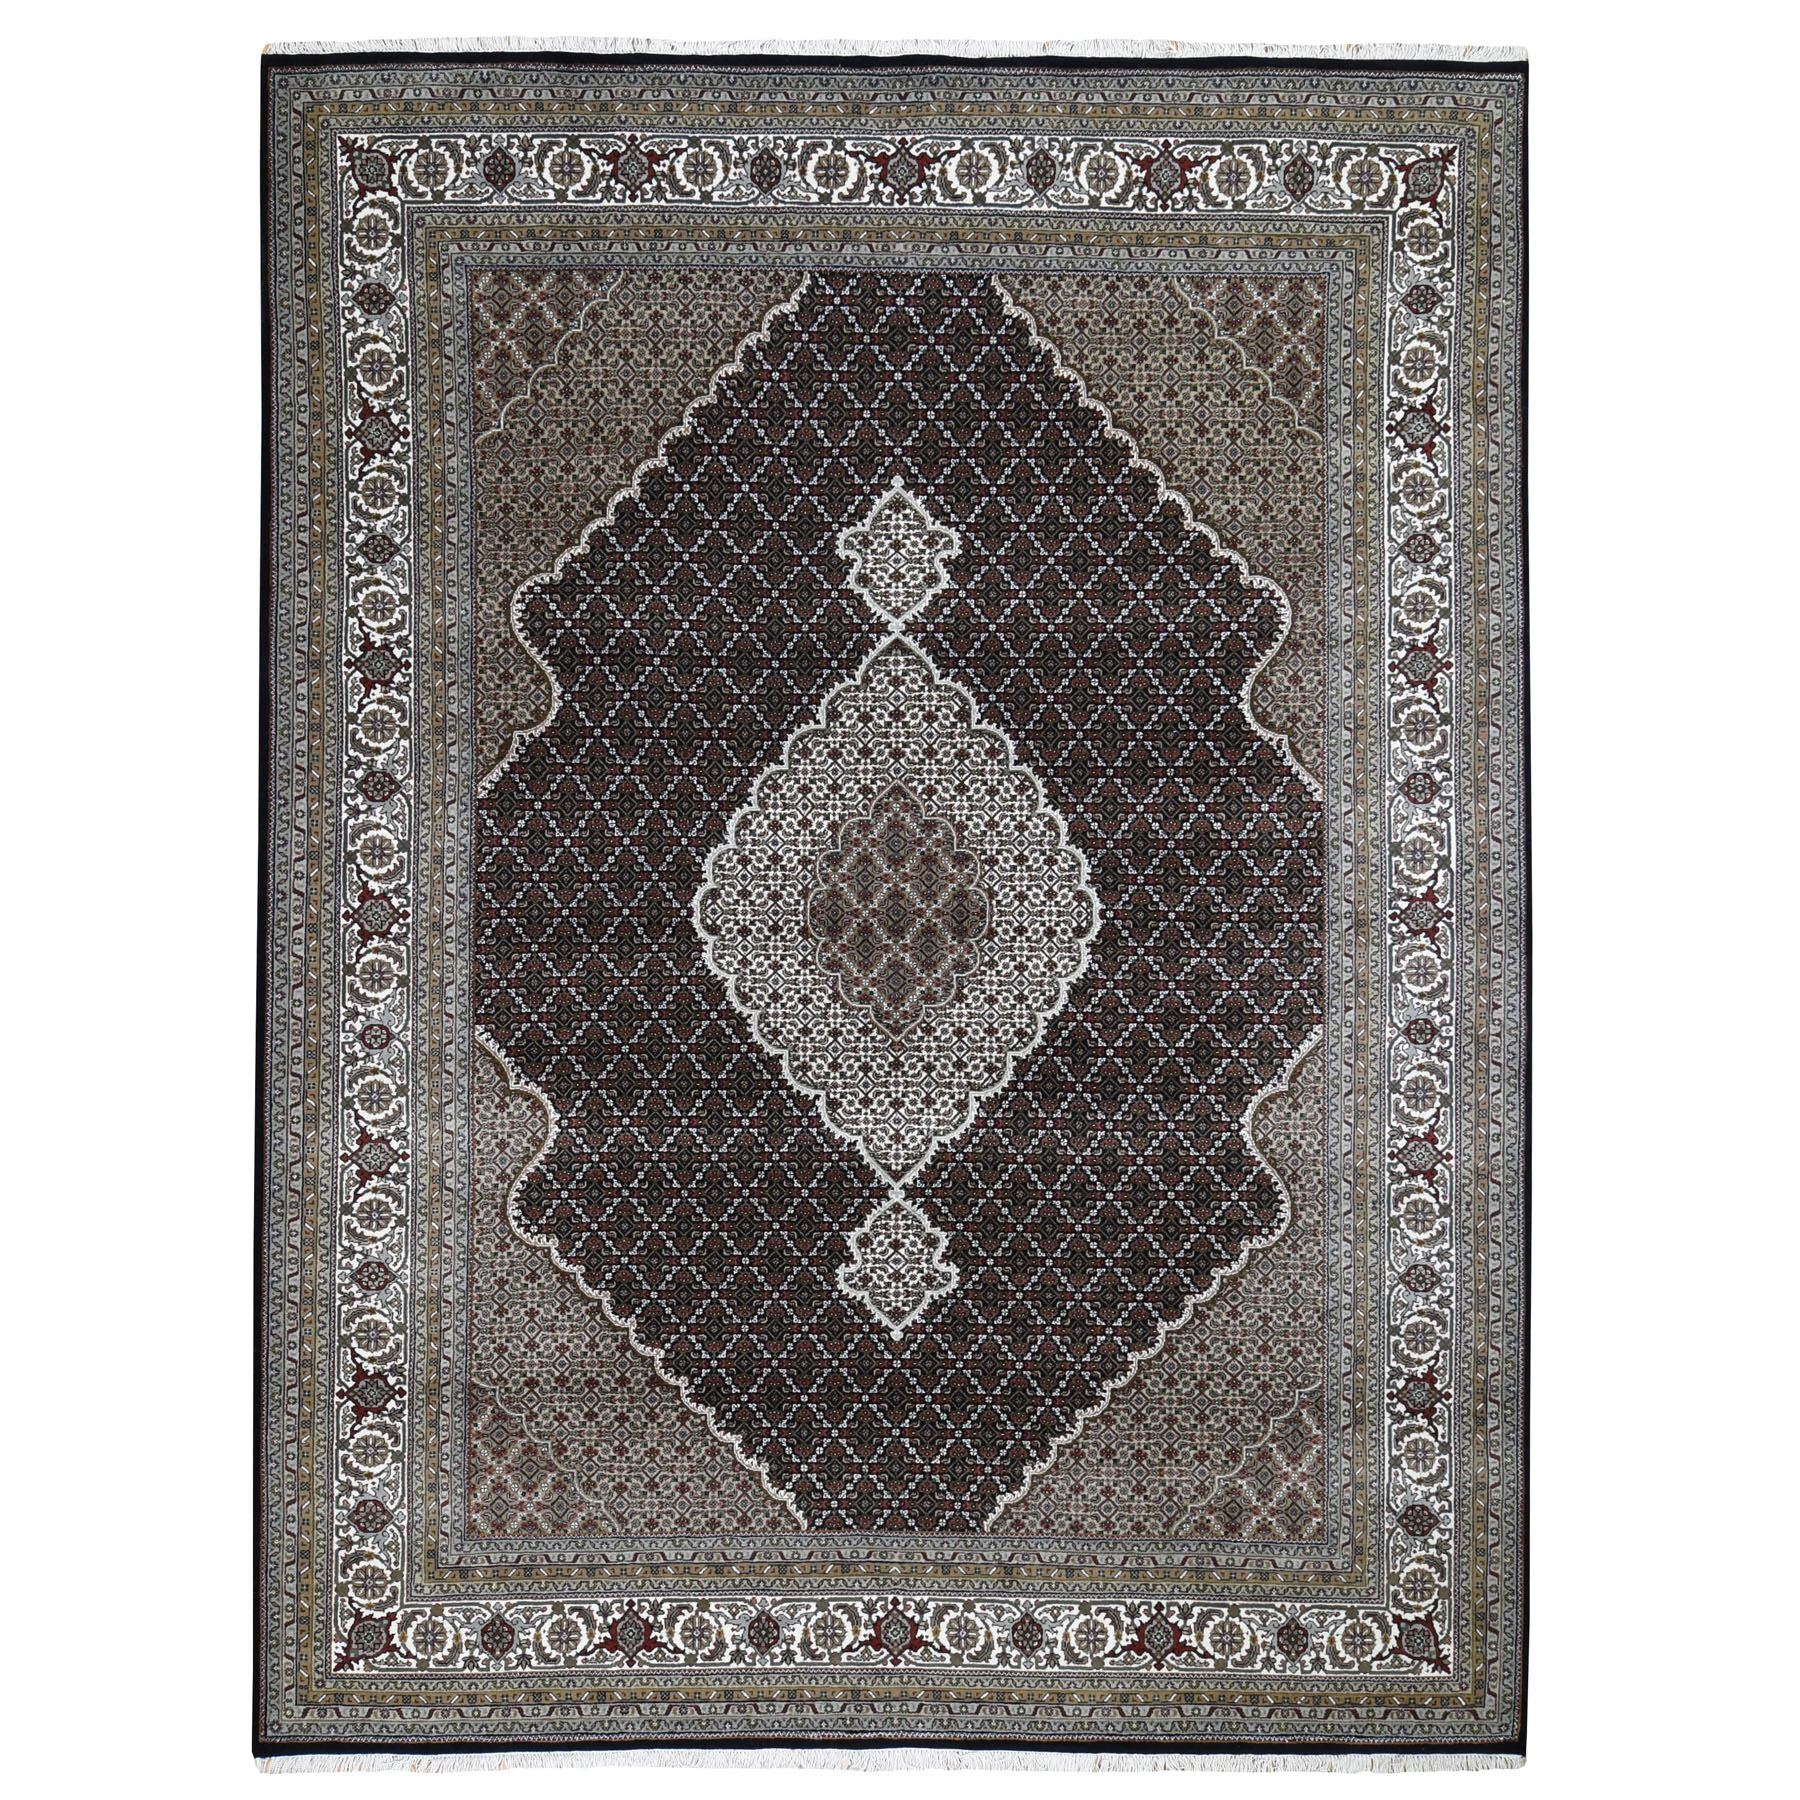 Pirniakan Collection Hand Knotted Black Rug No: 0199260